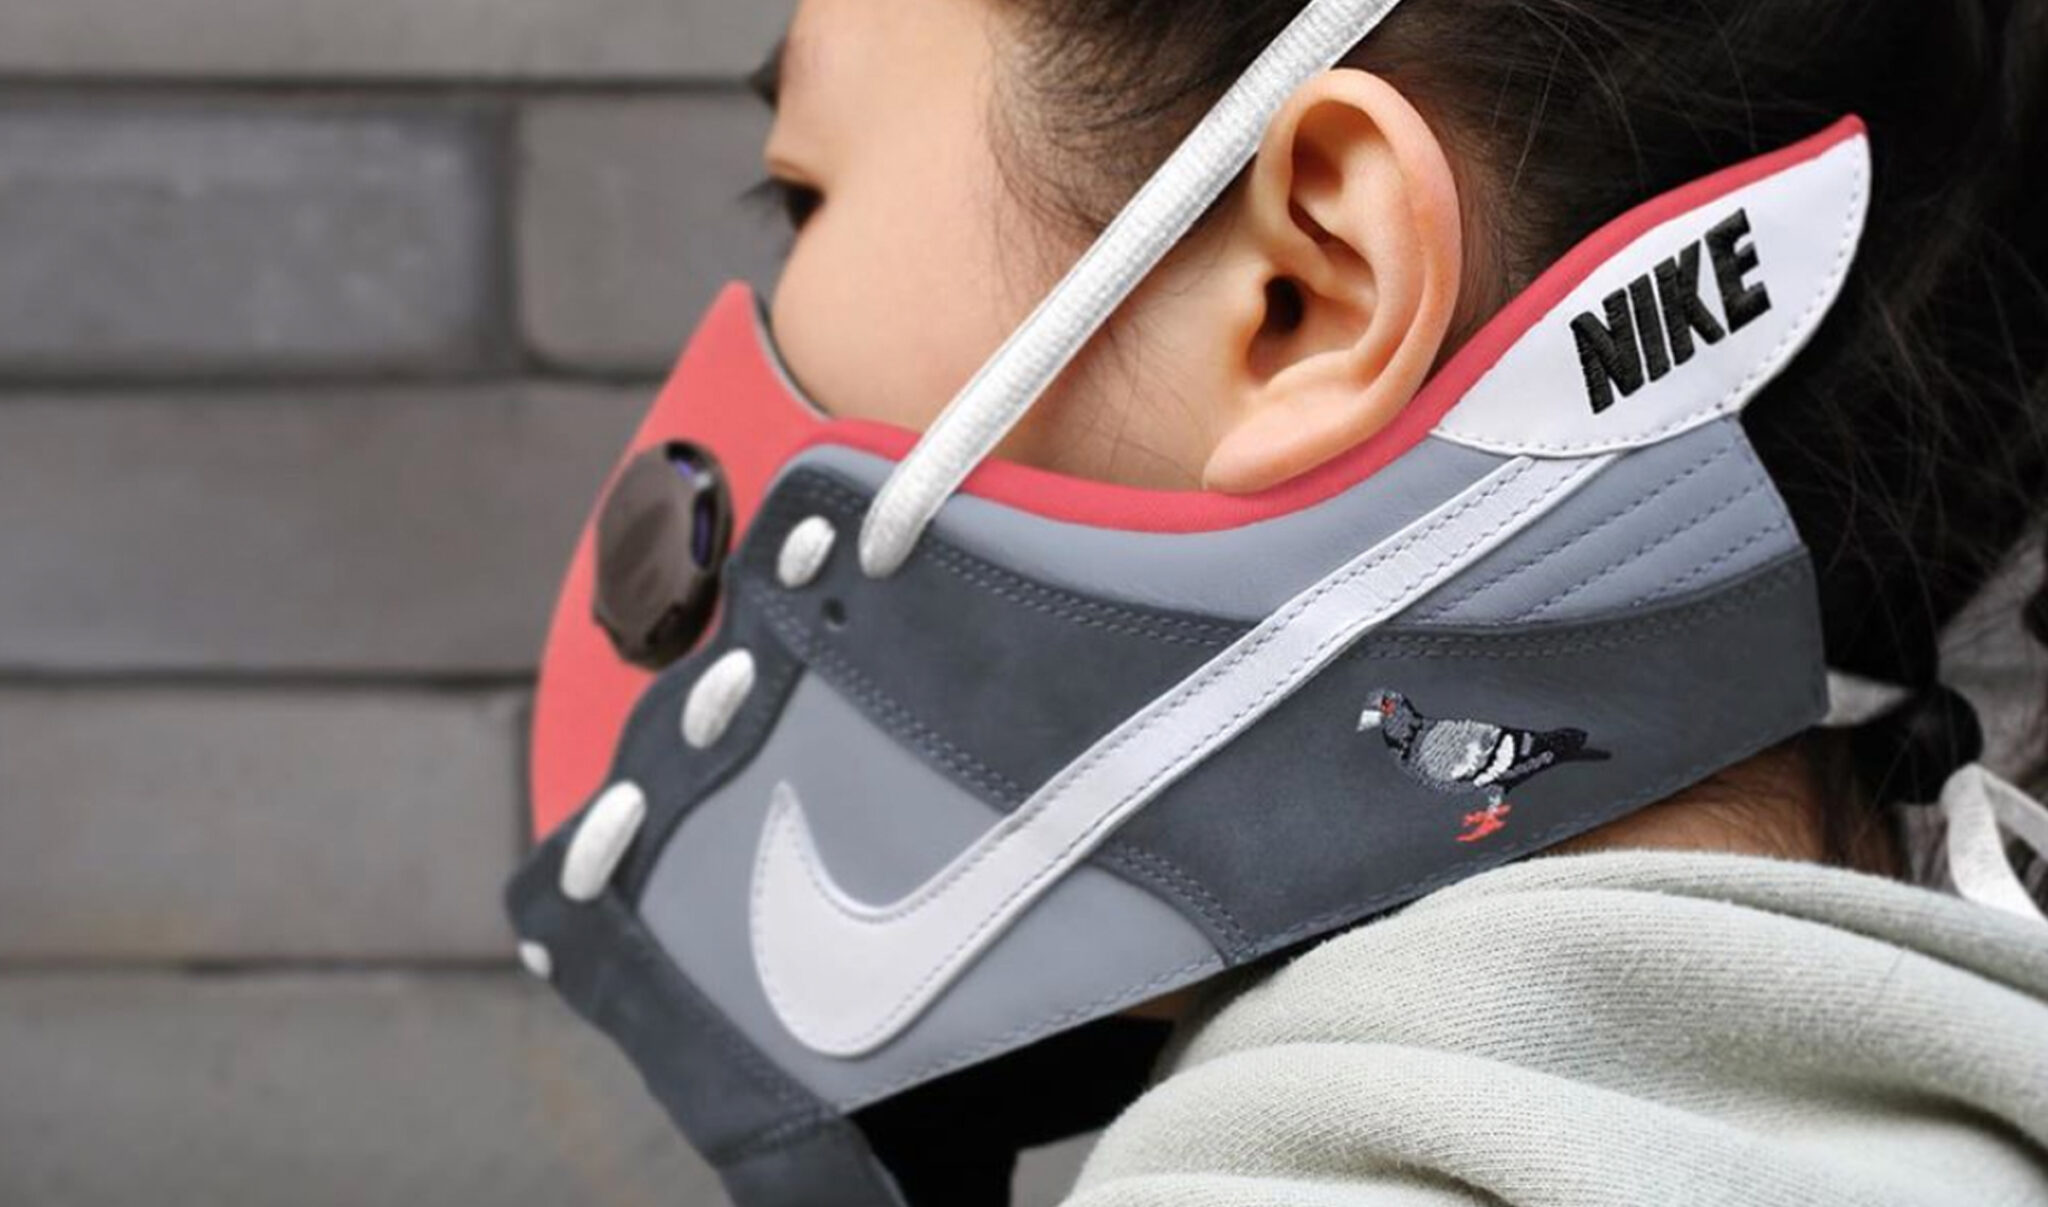 nike makes medical face masks, COVID-19 medical masks